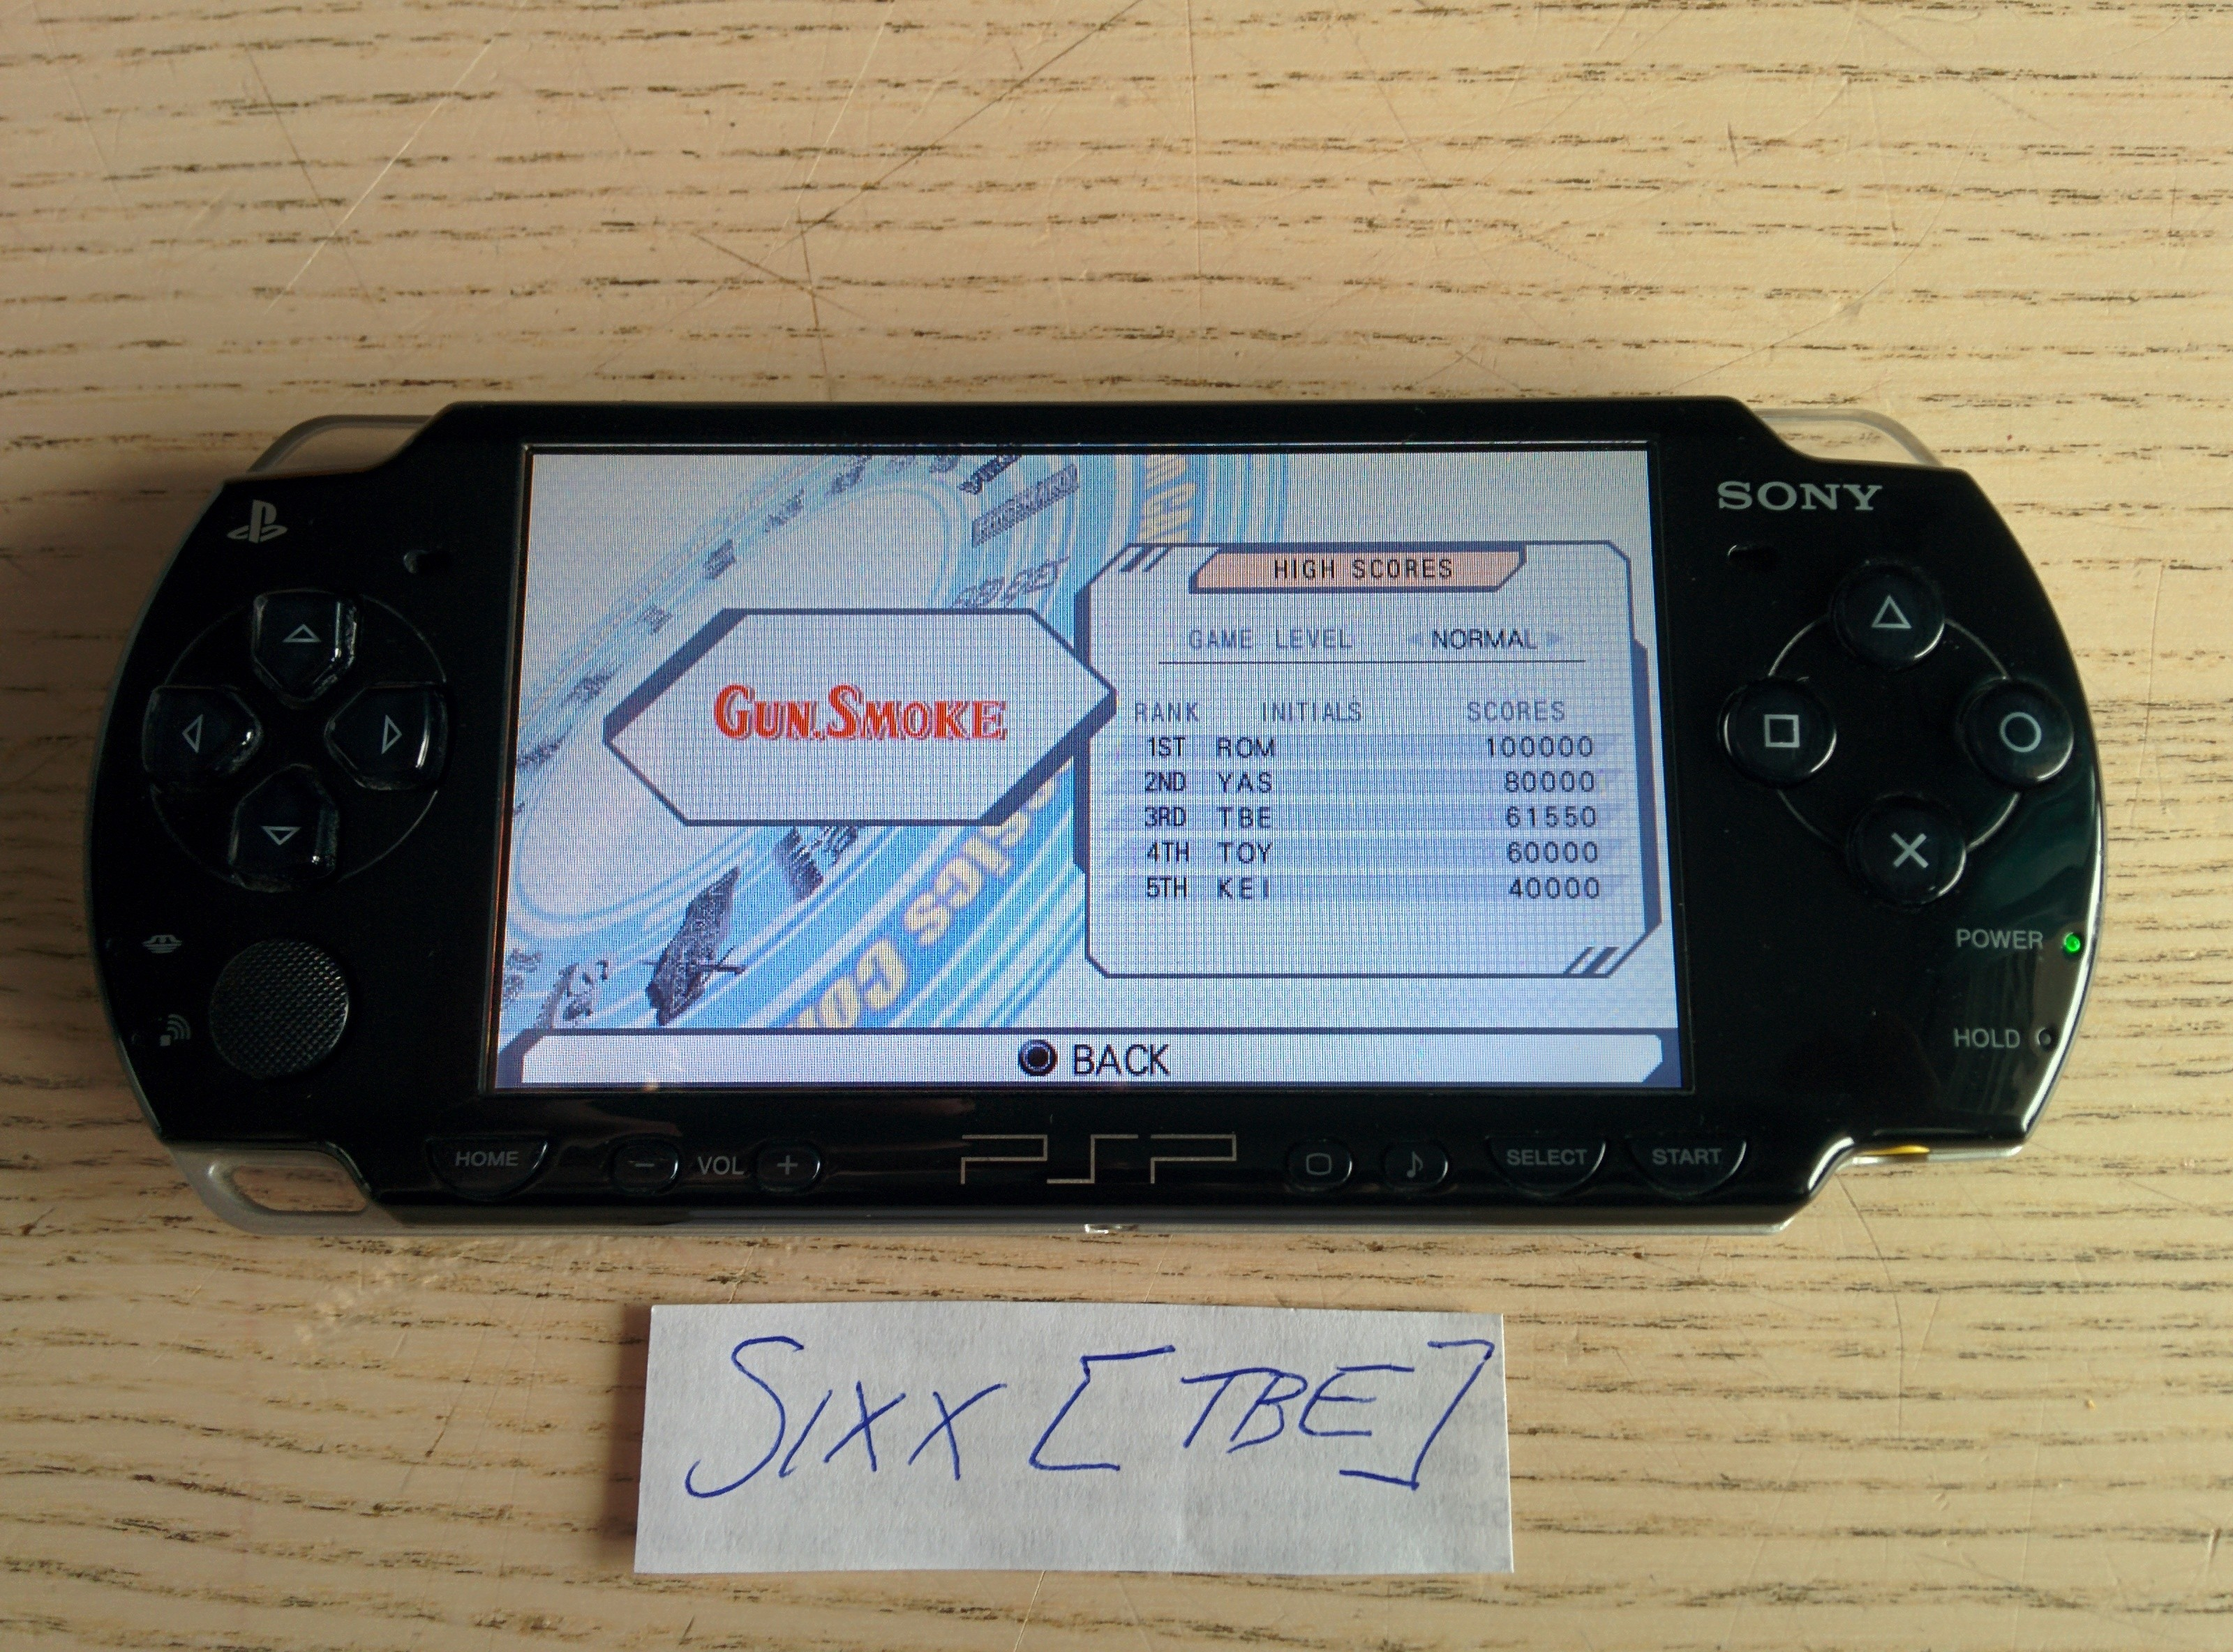 Sixx: Capcom Classics Collection Reloaded: Gun.Smoke (PSP) 61,550 points on 2014-08-09 17:55:41